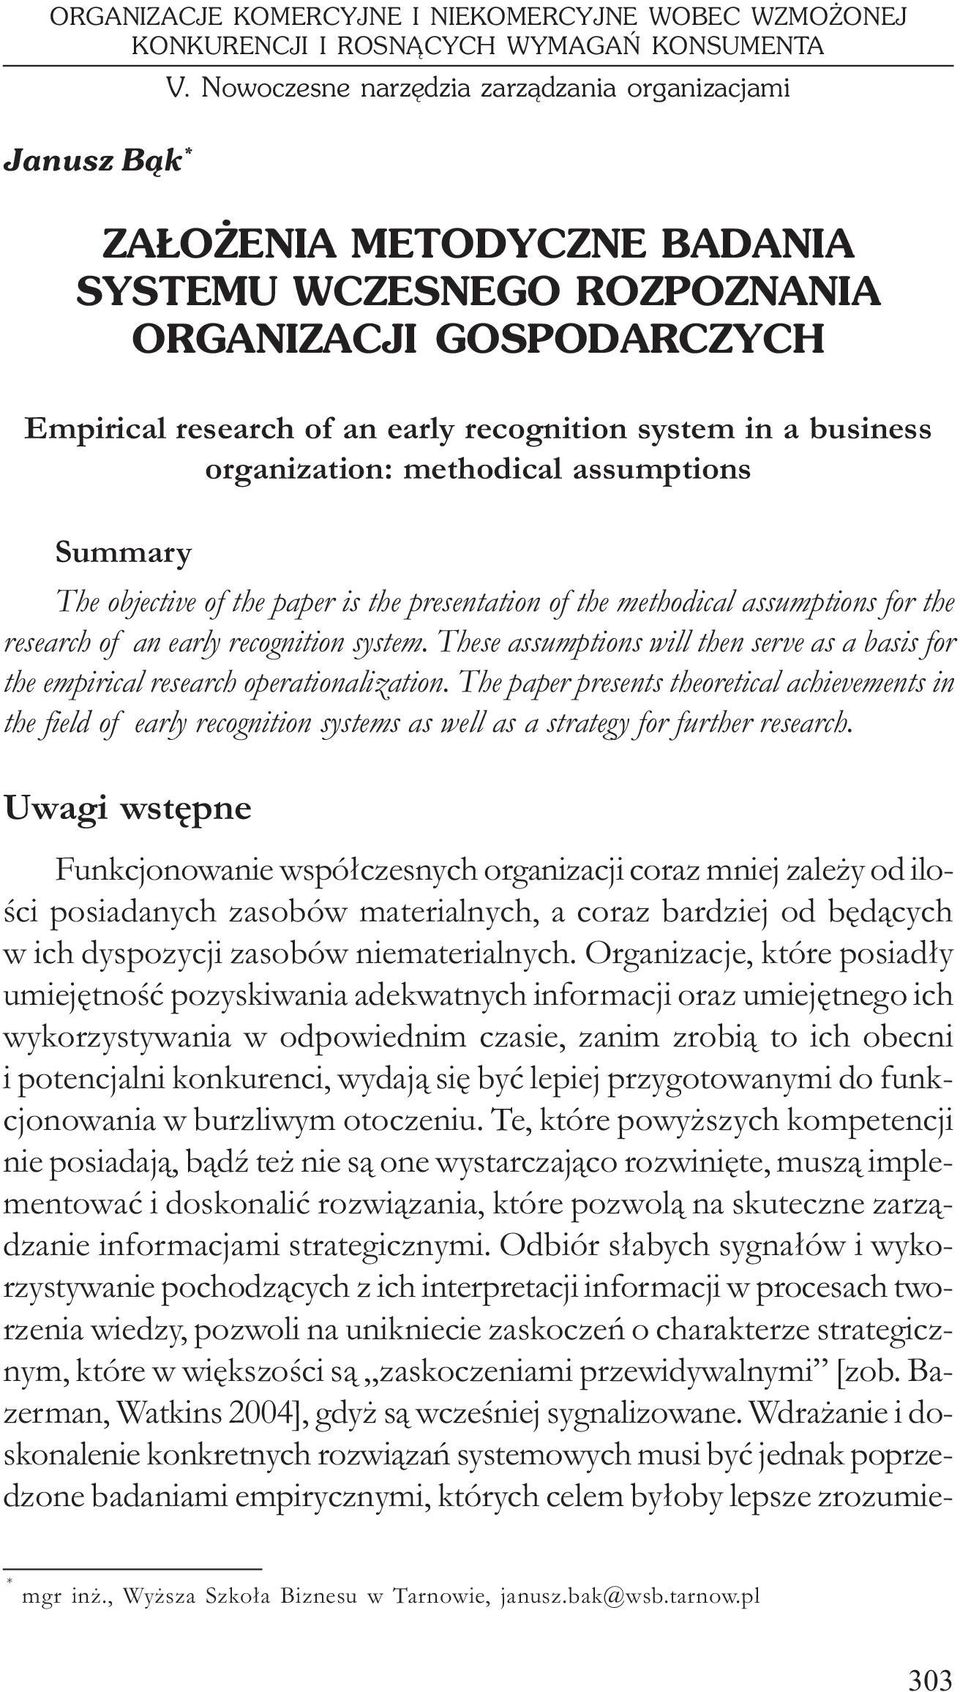 business organization: methodical assumptions Summary The objective of the paper is the presentation of the methodical assumptions for the research of an early recognition system.